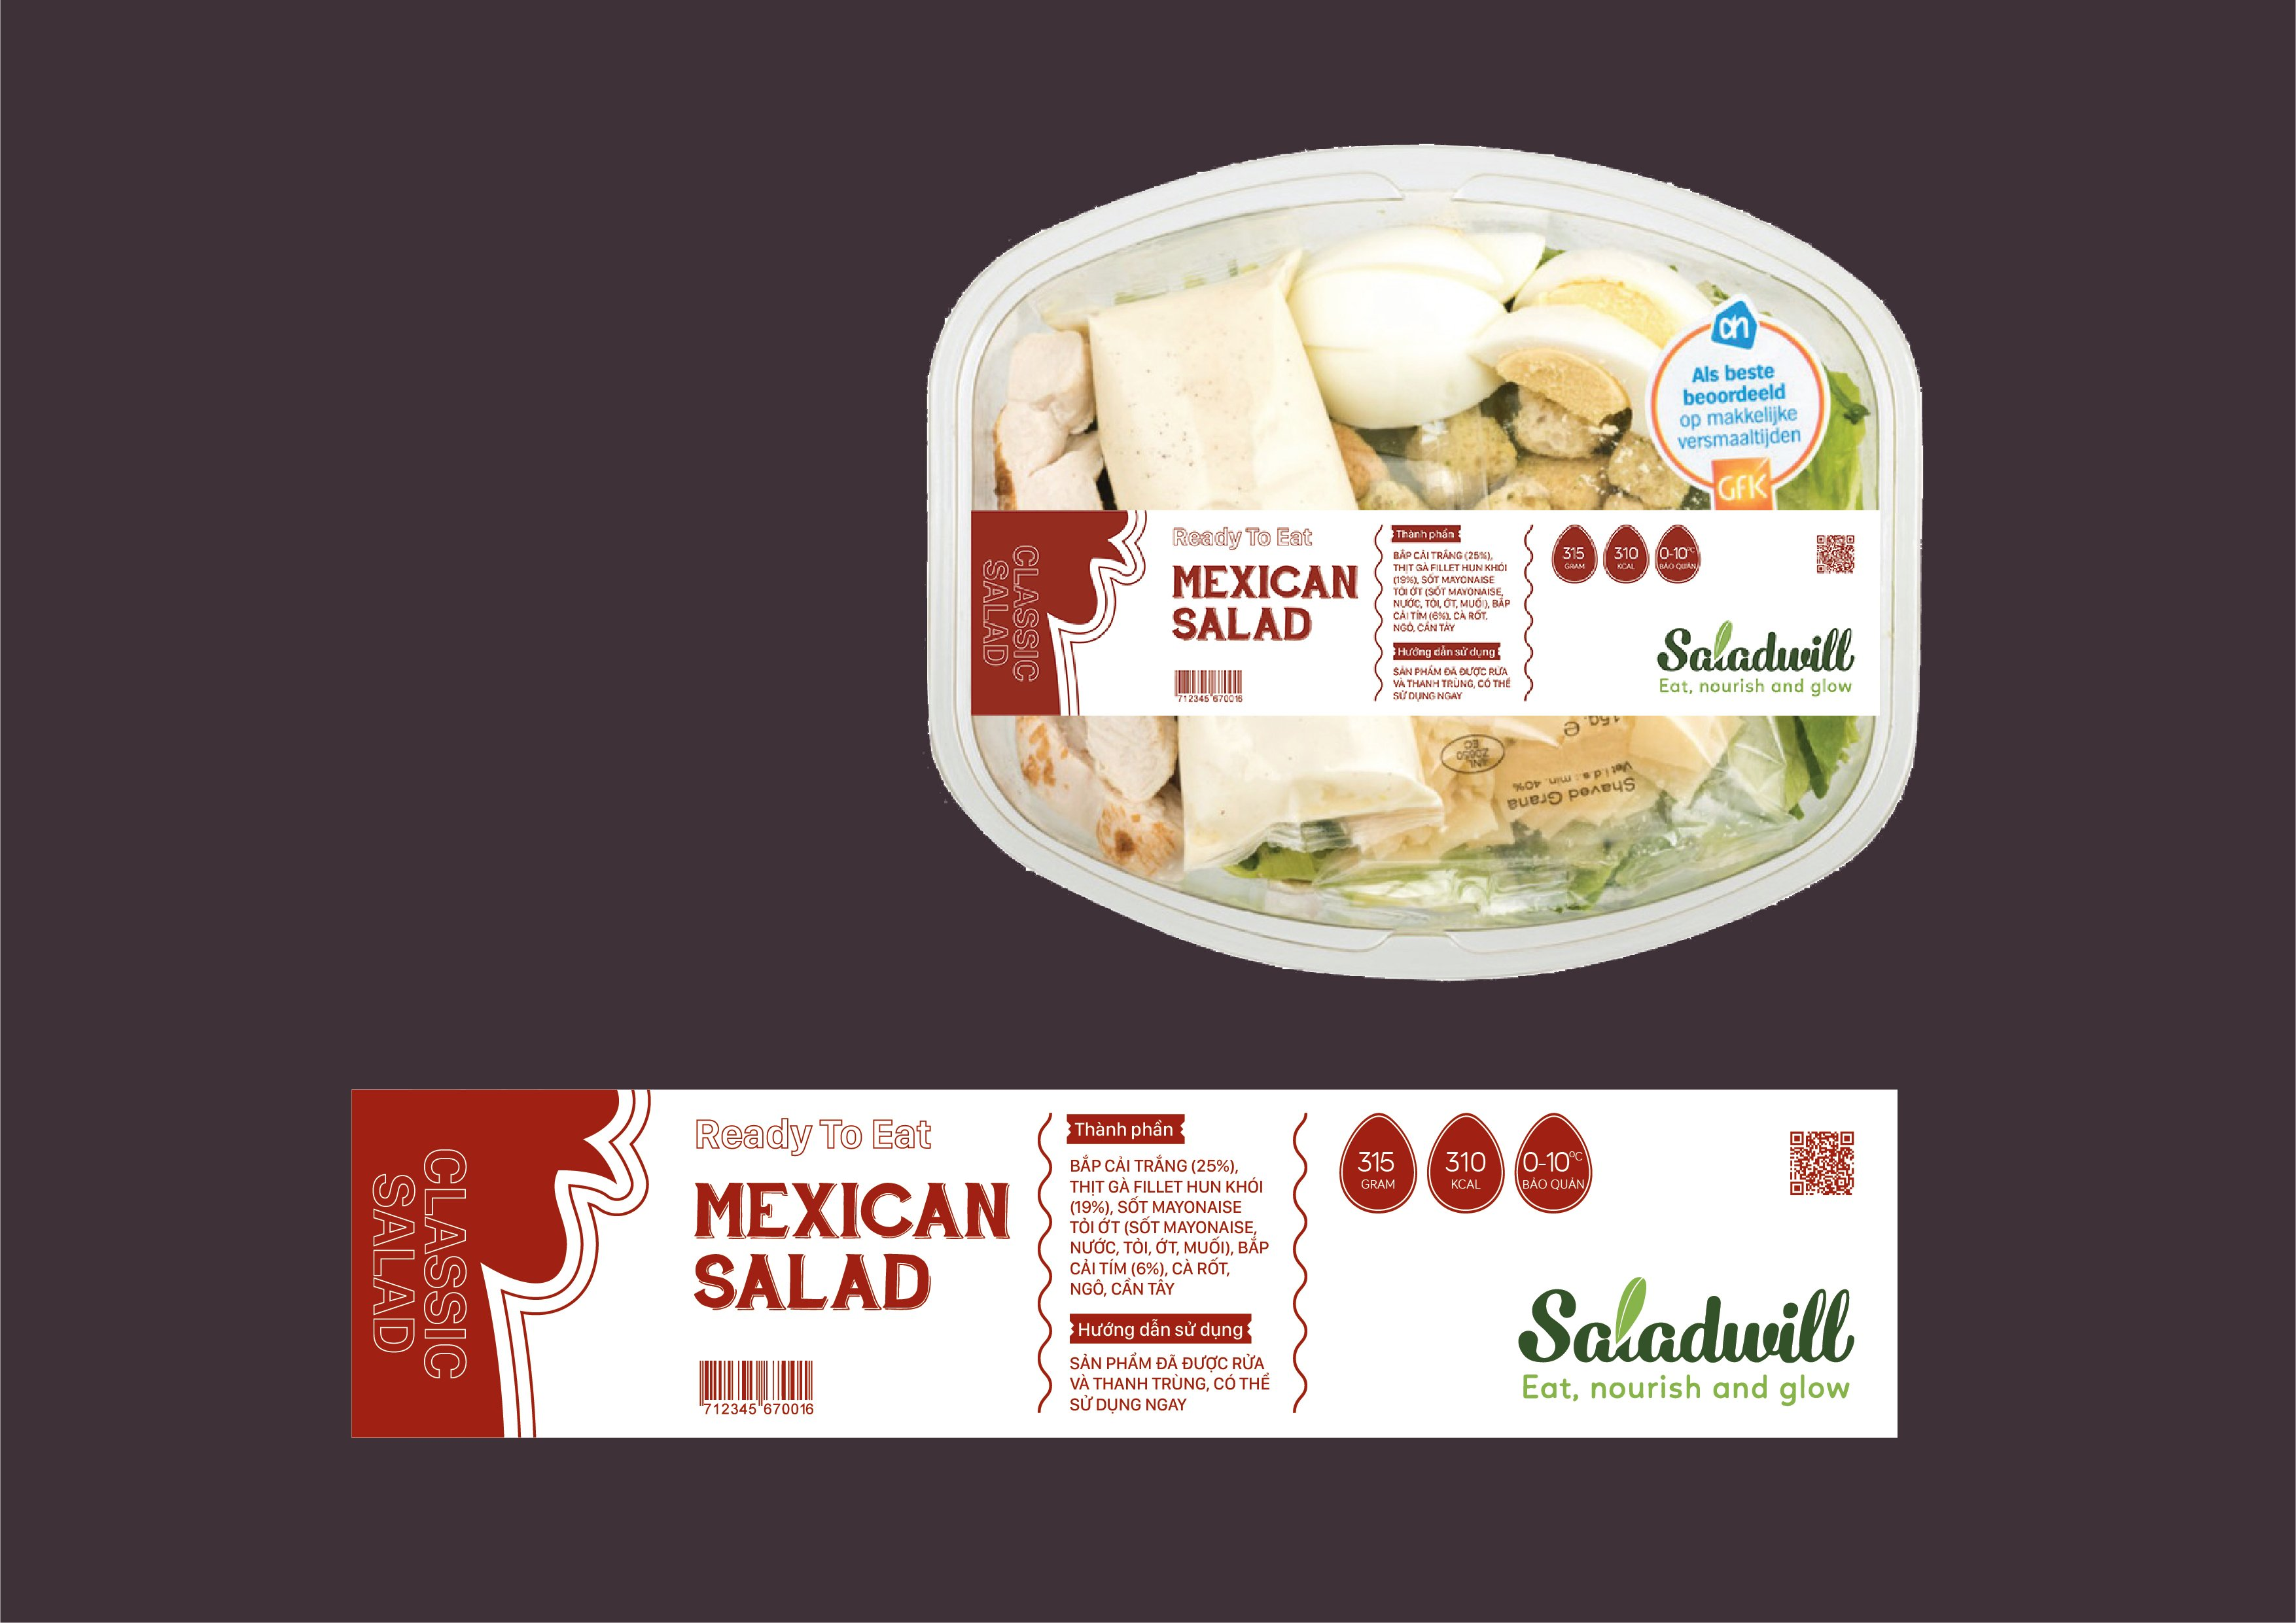 Ready To Eat - Mexi can salad mini